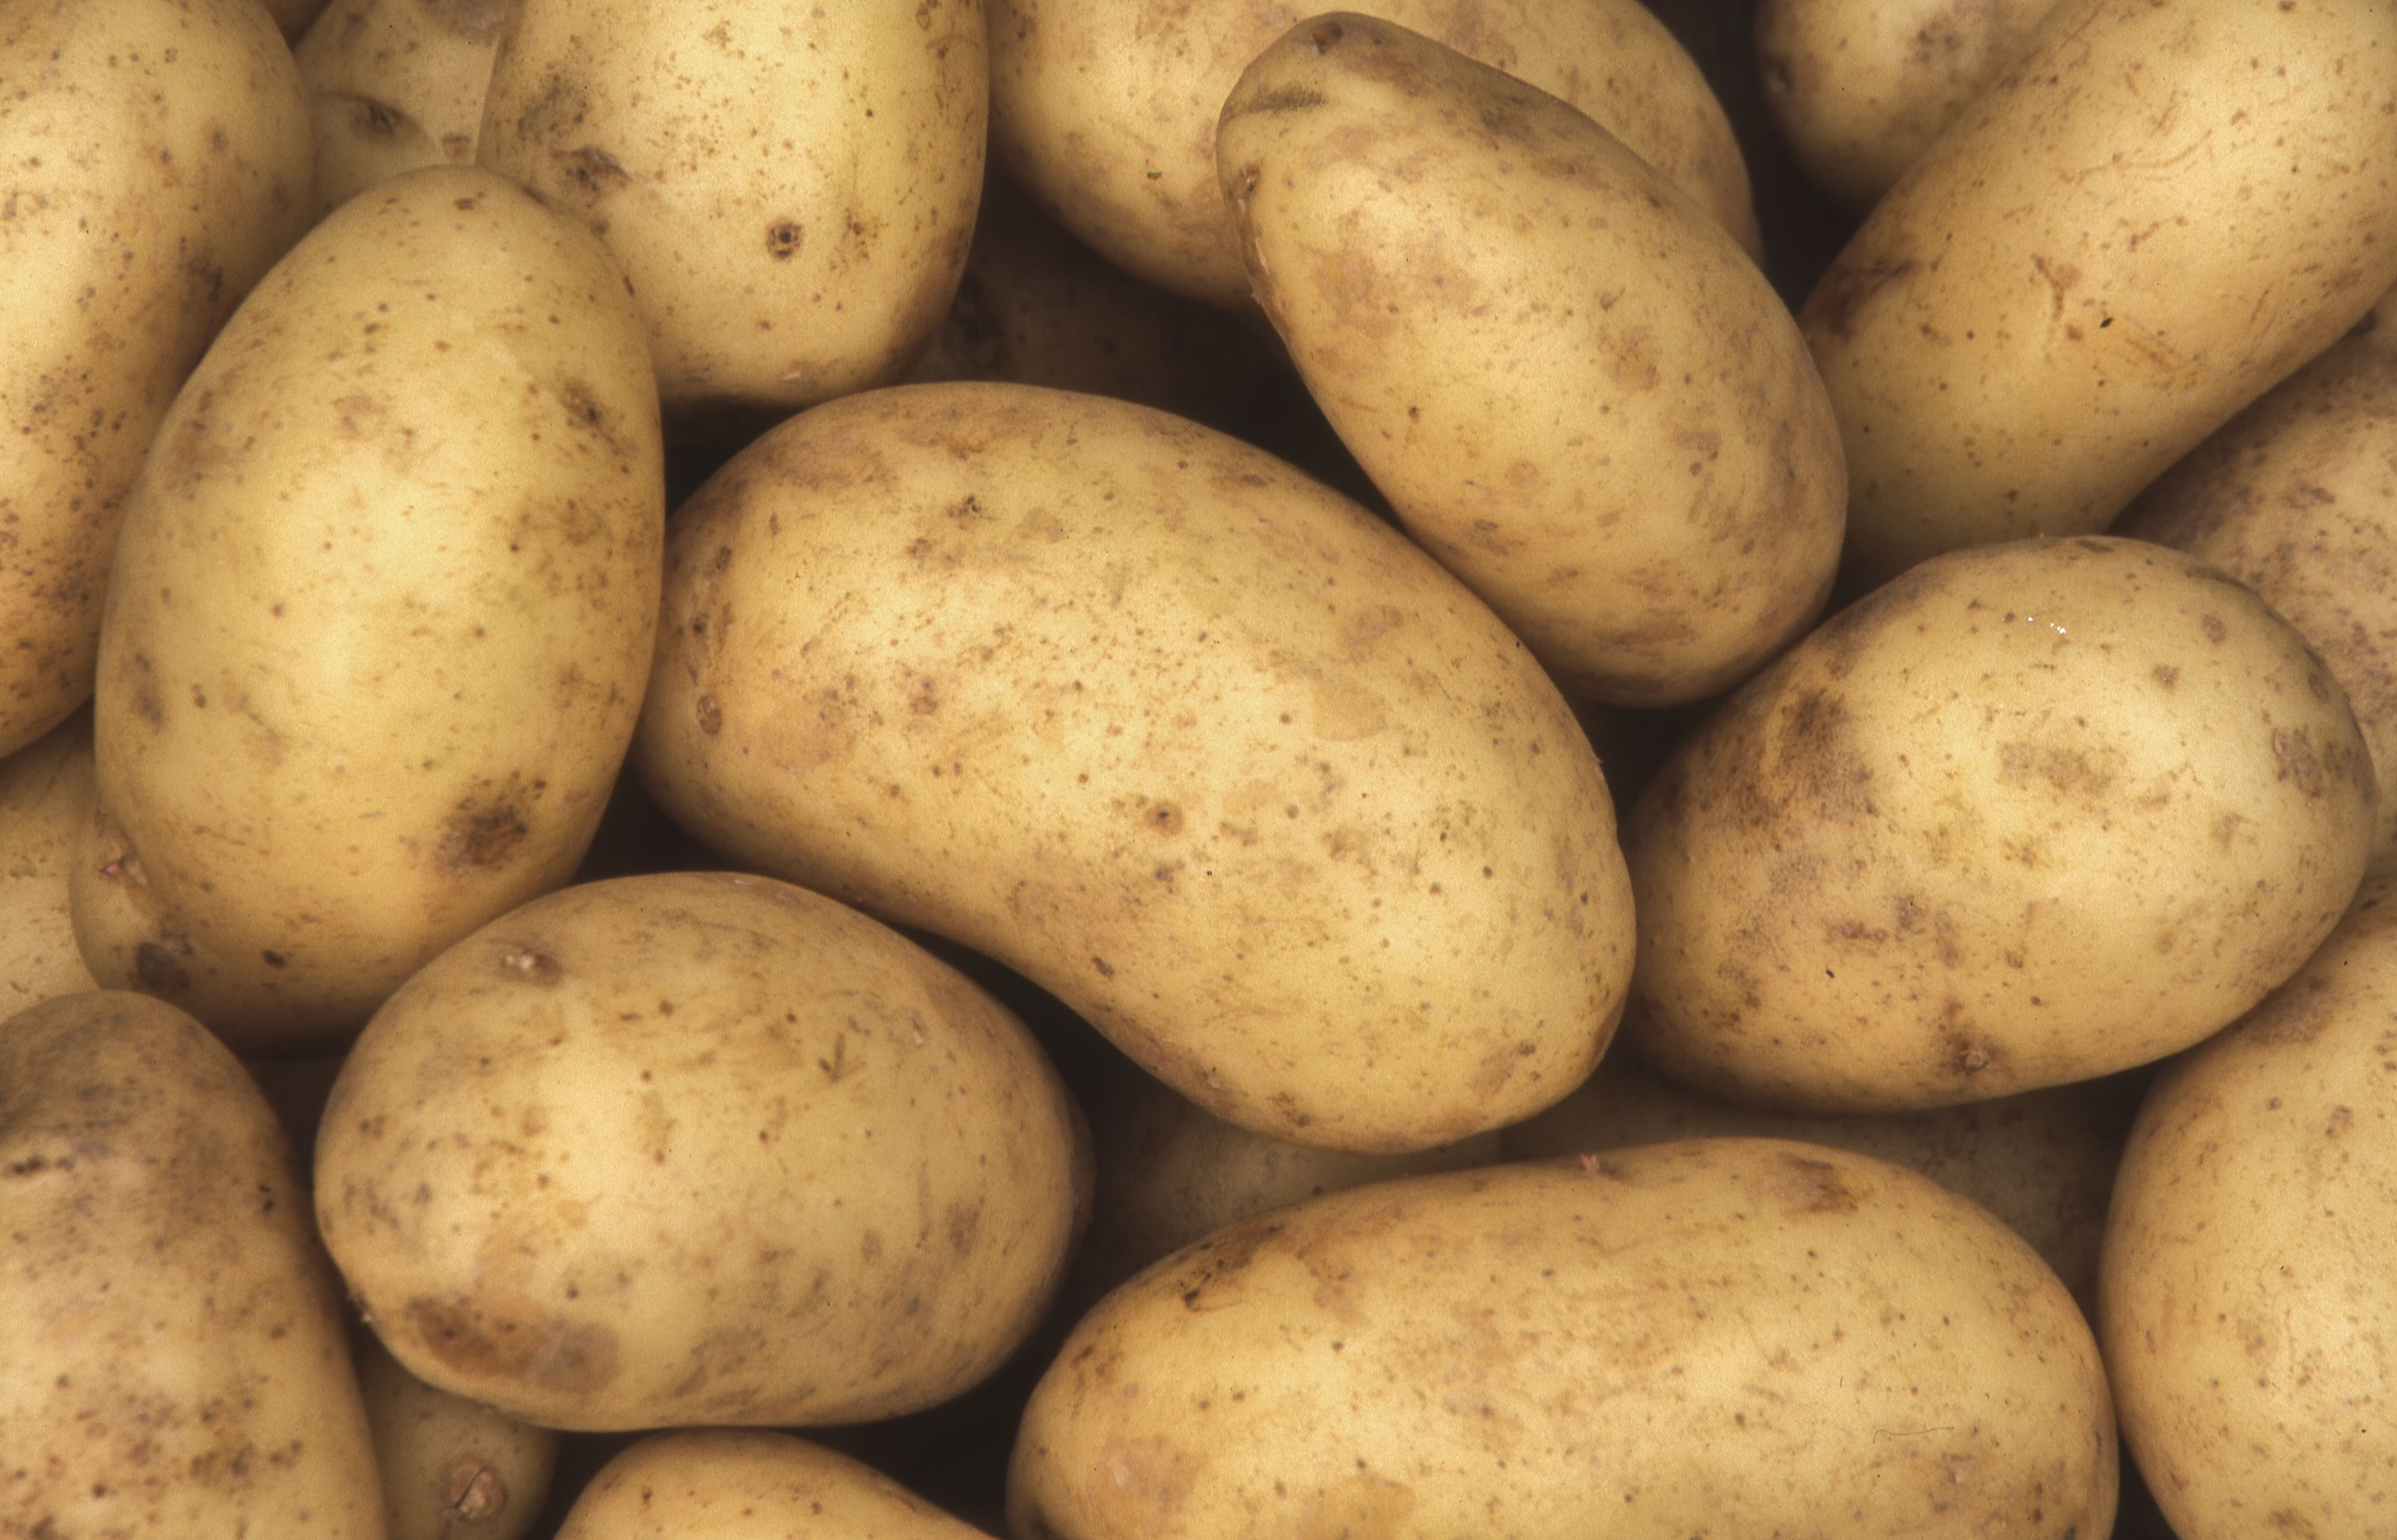 Are Potatoes Good For You? | Are Sweet Potatoes Healthy?